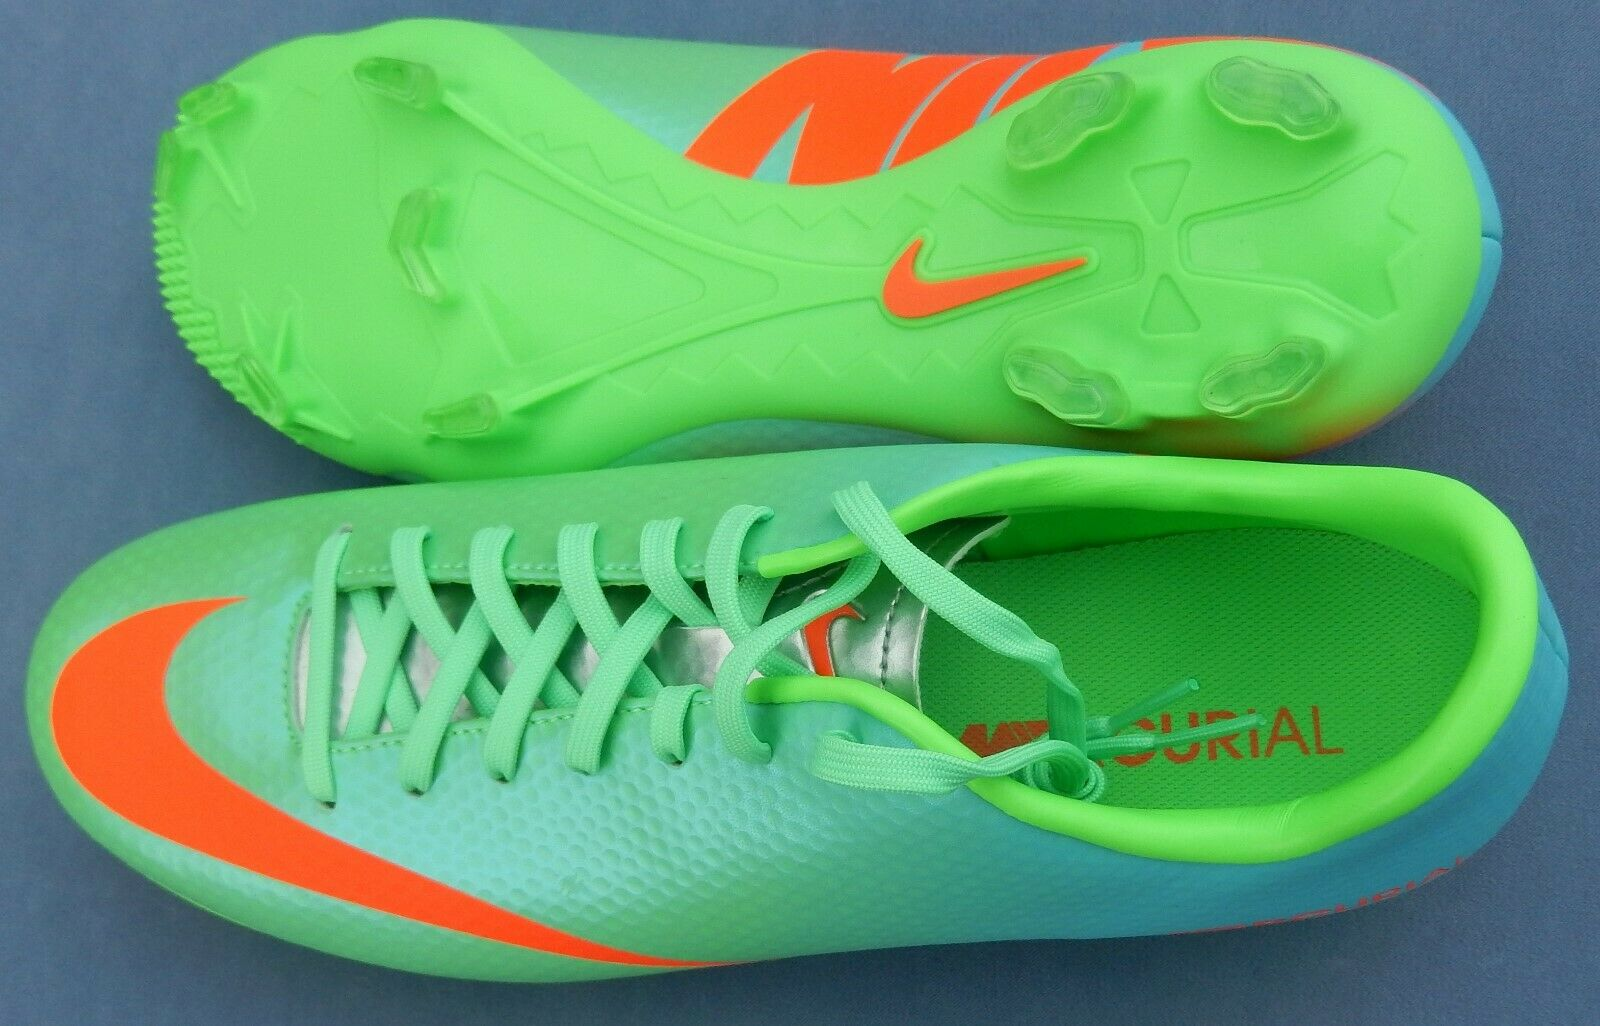 NIKE MERCURIAL VICTORY IV FG MENS SOCCER CLEATS GREEN orange blueE 555613-380